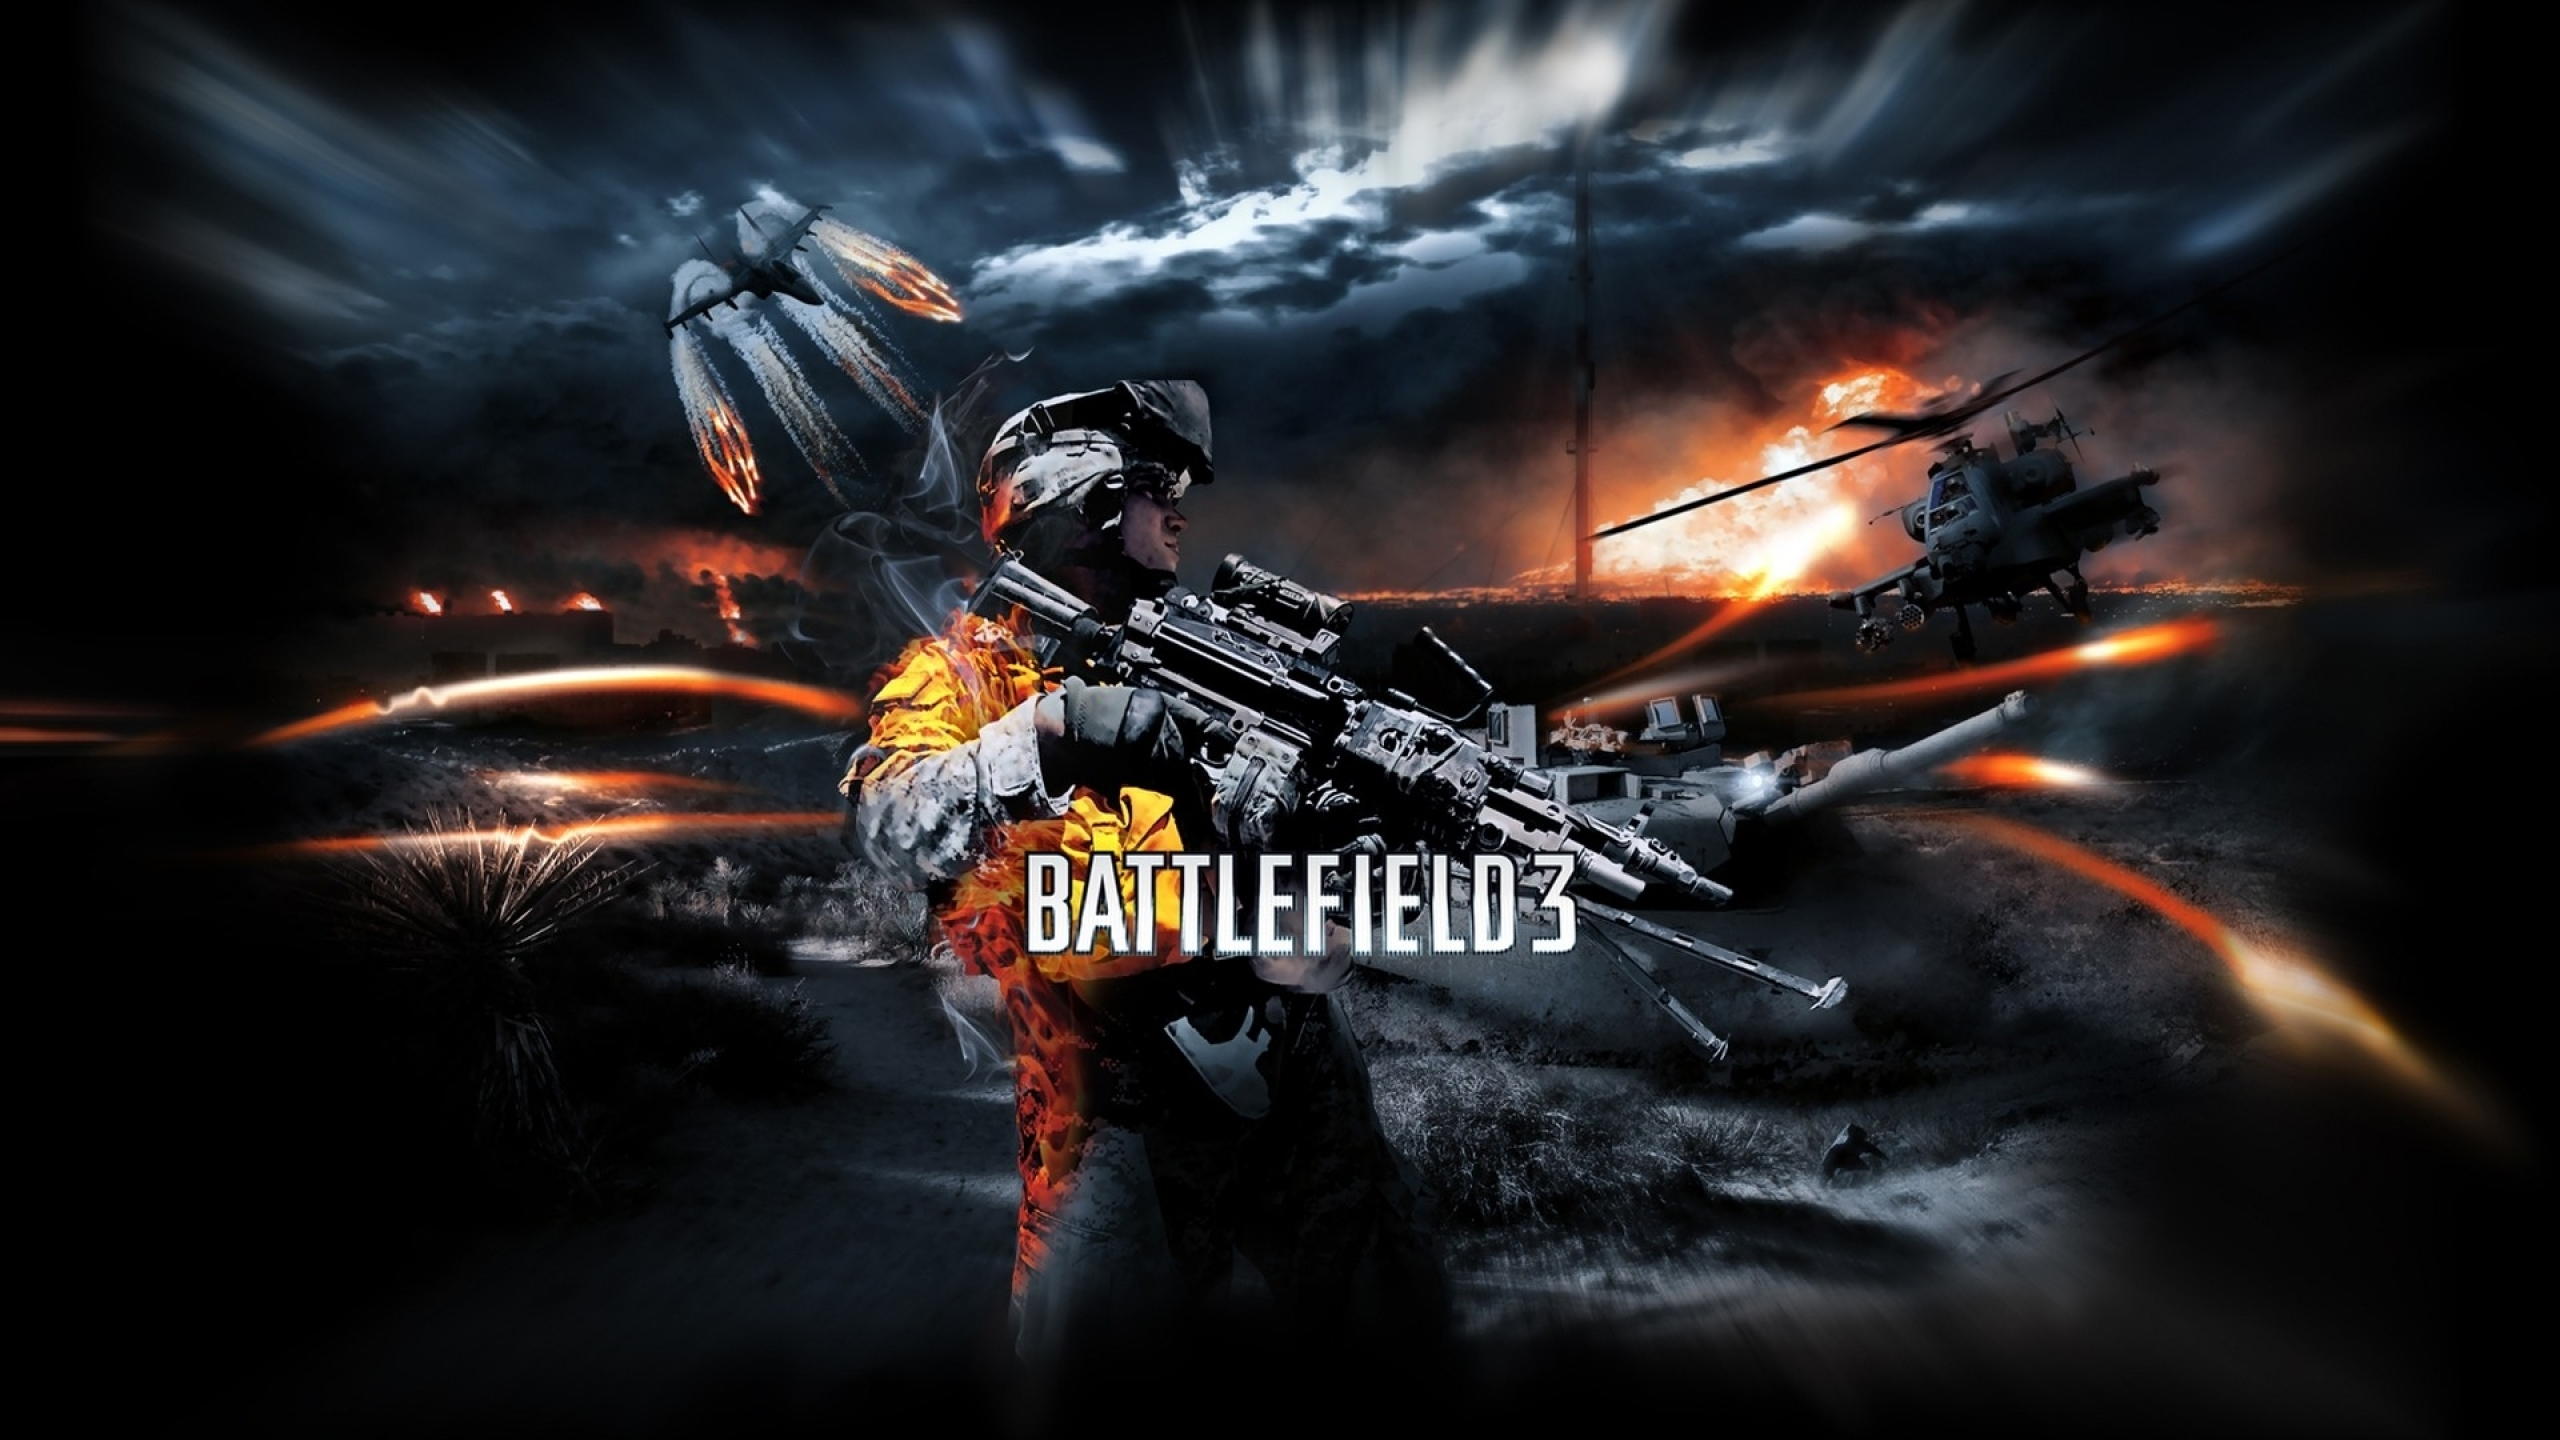 2560x1440 battlefield 3 posters 1920x1080 wallpaper Art HD Wallpaper 2560x1440